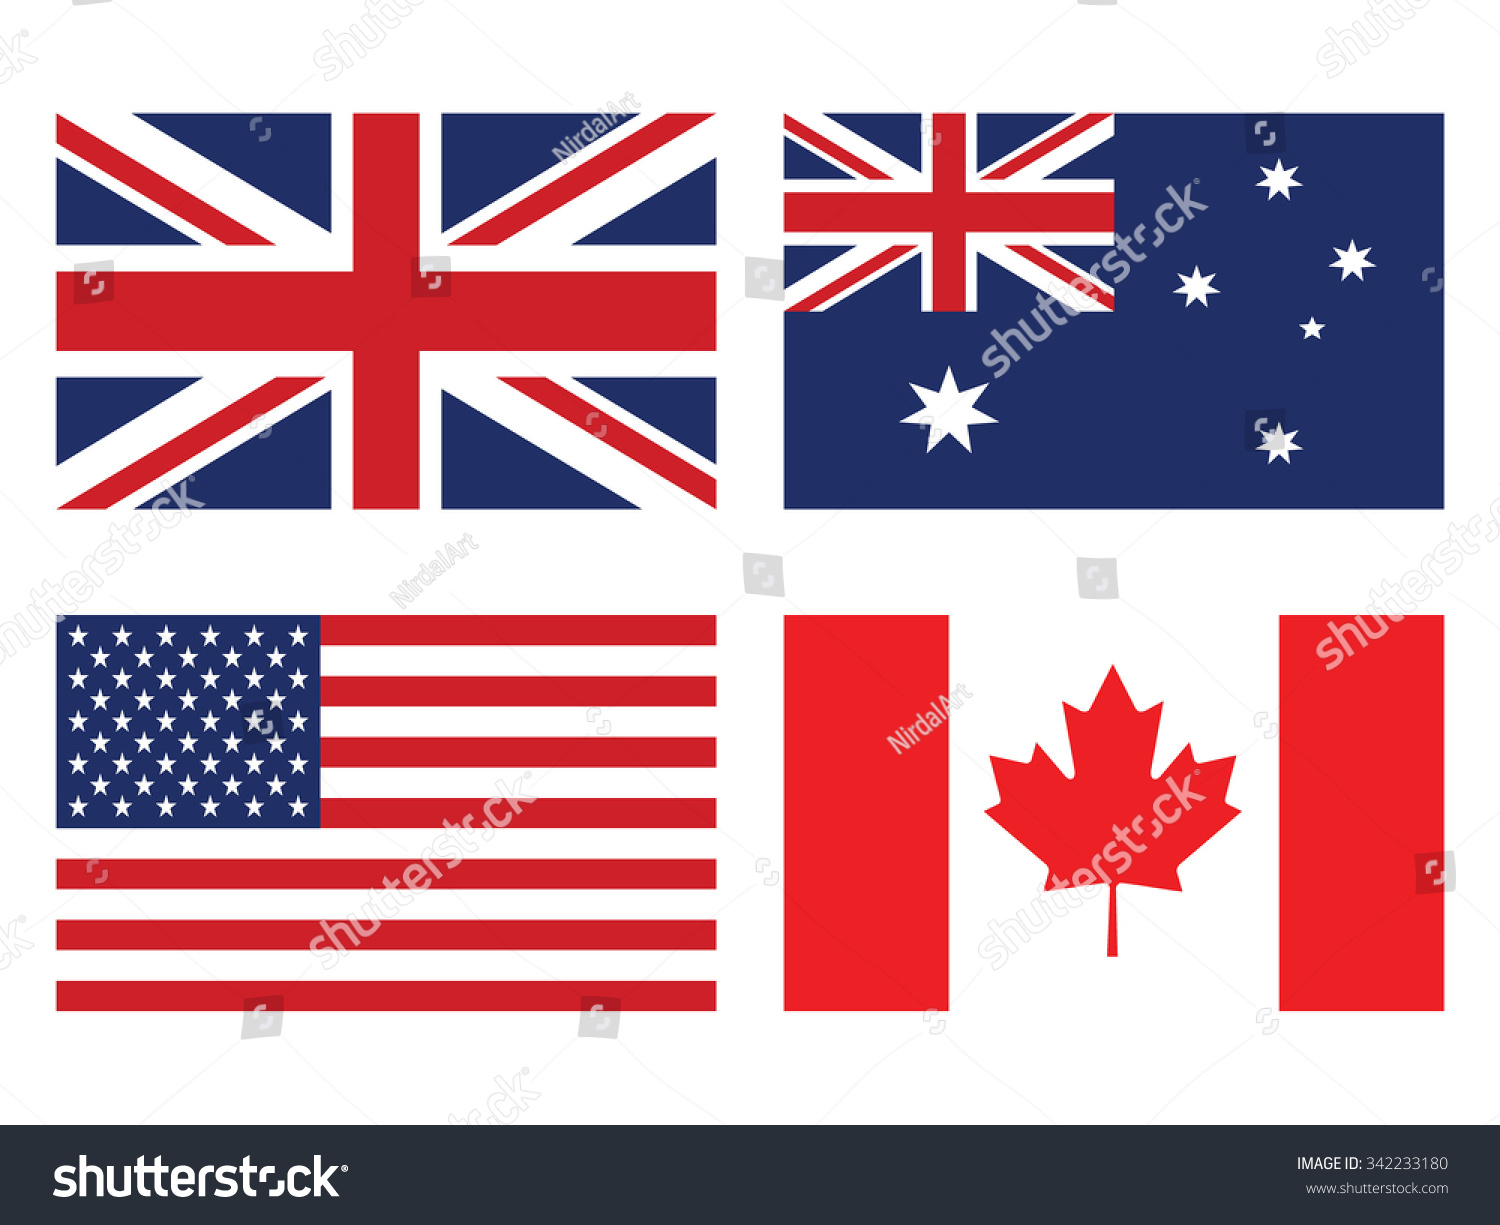 australian and united states of america 2018-08-15 social security agreement between australia and the united states of america  then for the purposes of a claim for that australian benefit, that united states period of coverage shall be deemed,.